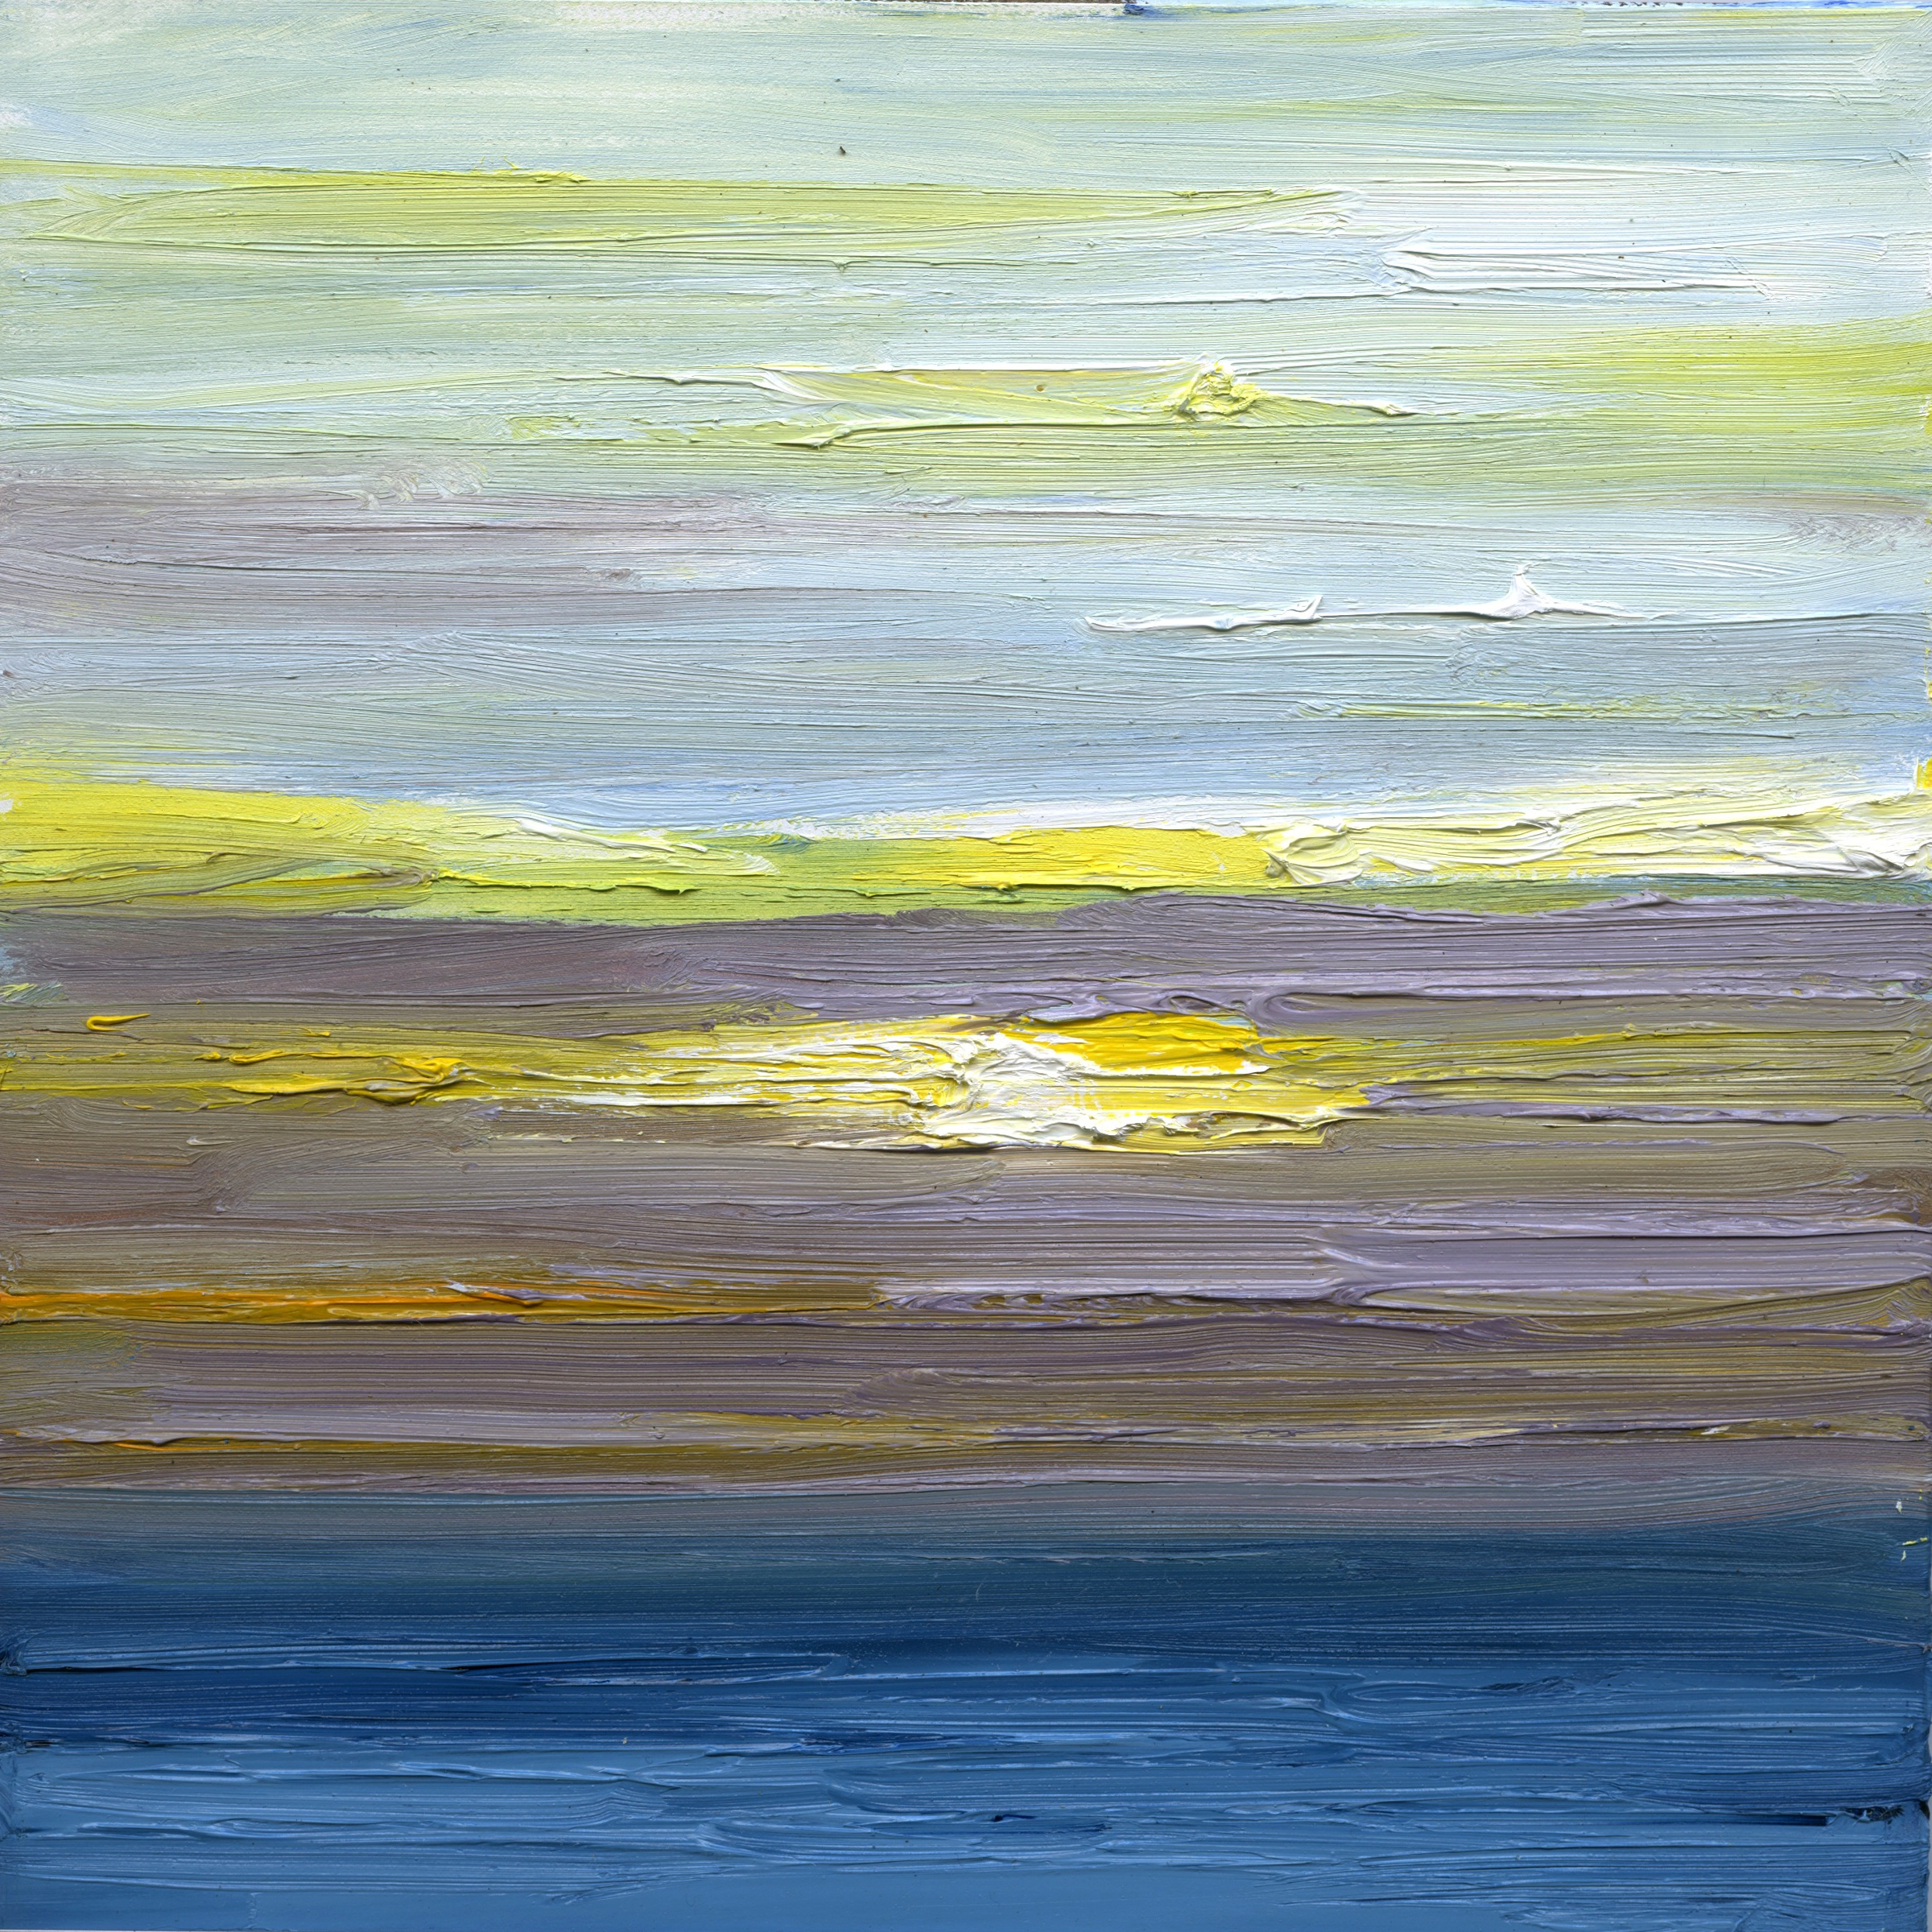 At The Horizon Wellfleet Study, oil on canvas, 8 by 8 inches, 2015, $750